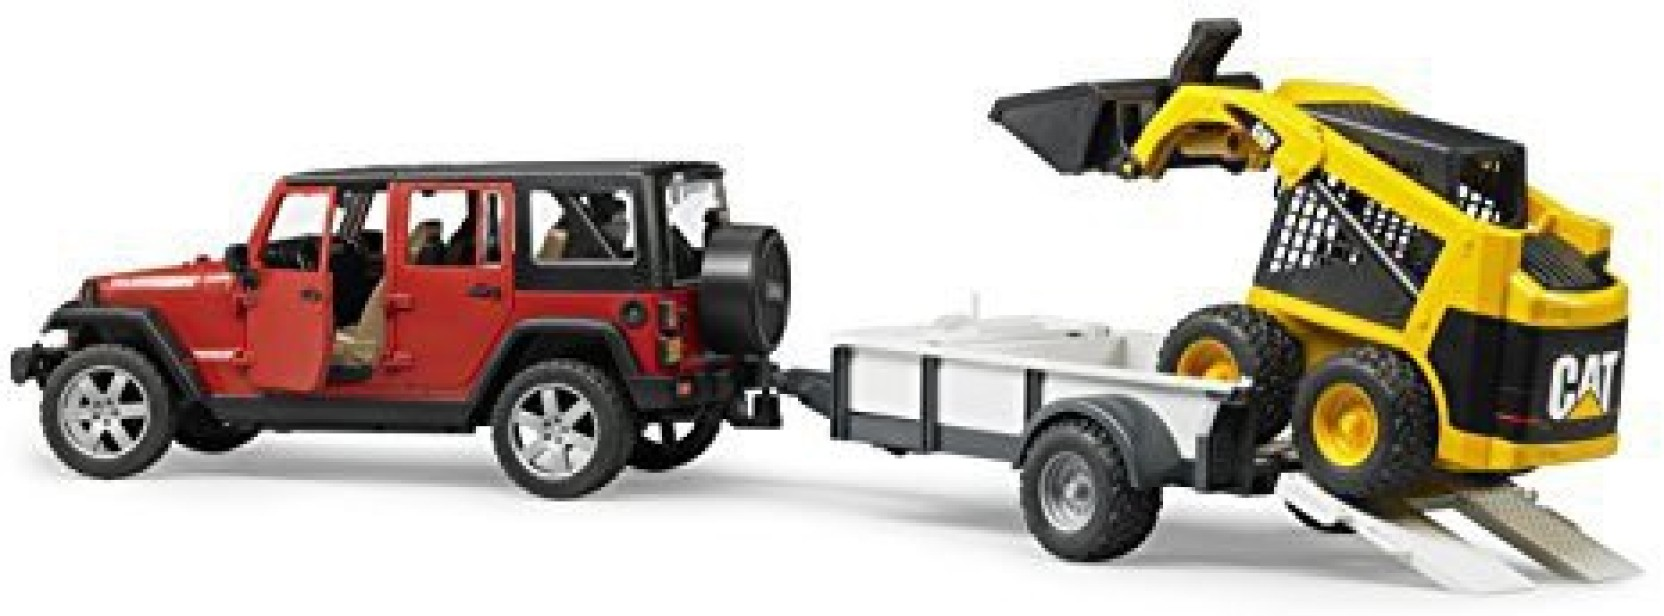 Bruder Toys Jeep Wrangler Unlimited Rubicon With Trailer And Cat Construction Home